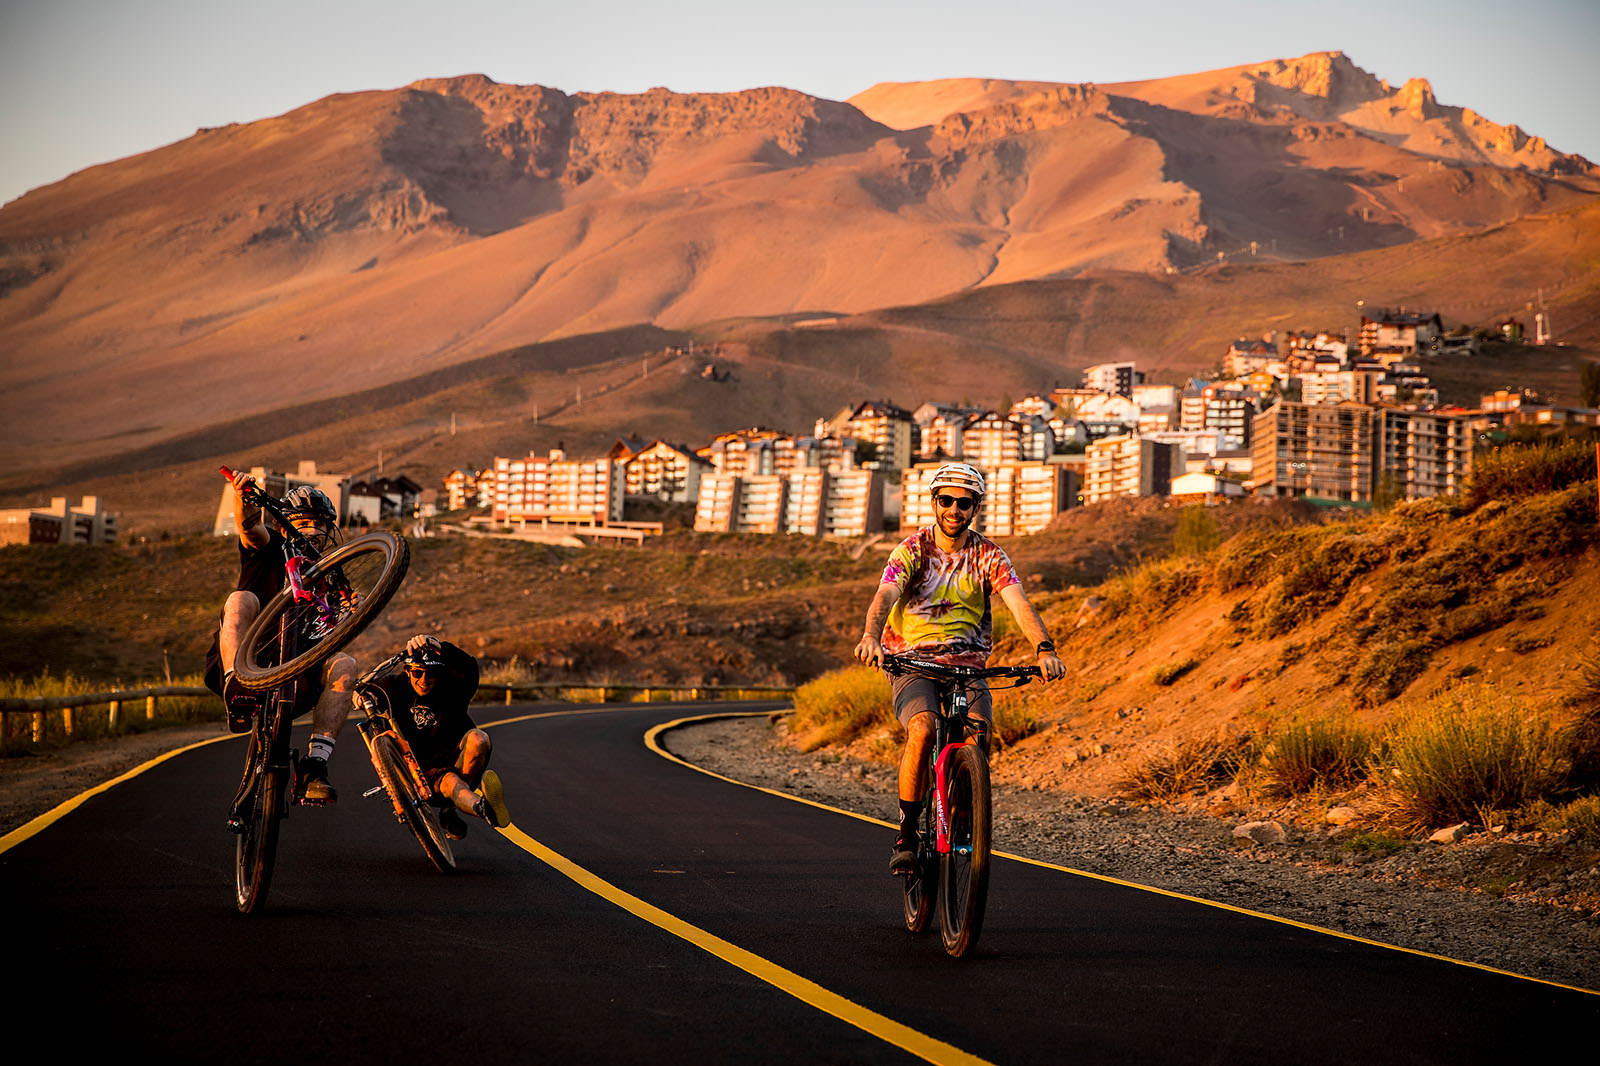 Santa Cruz Bicycles - Iago Garay, Josh Lewis, and Josh Bryceland in Chile